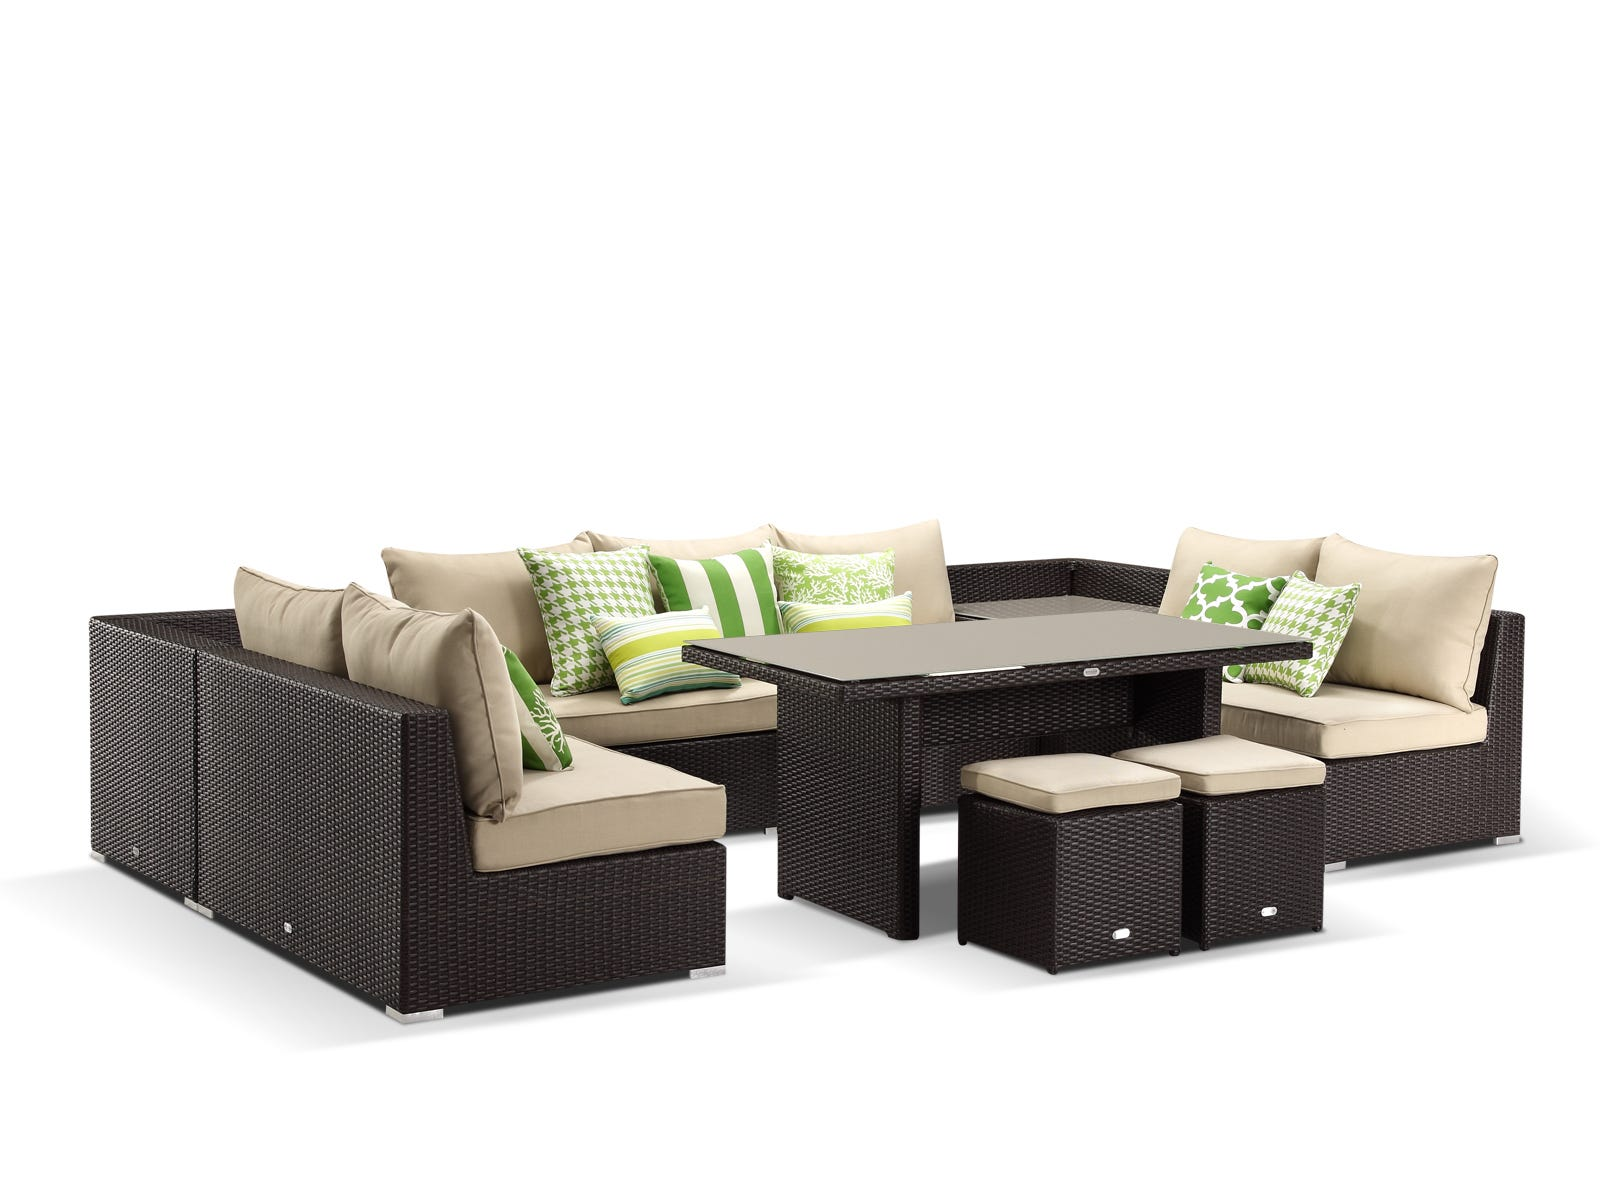 Outdoor furniture evolution dining out in comfort